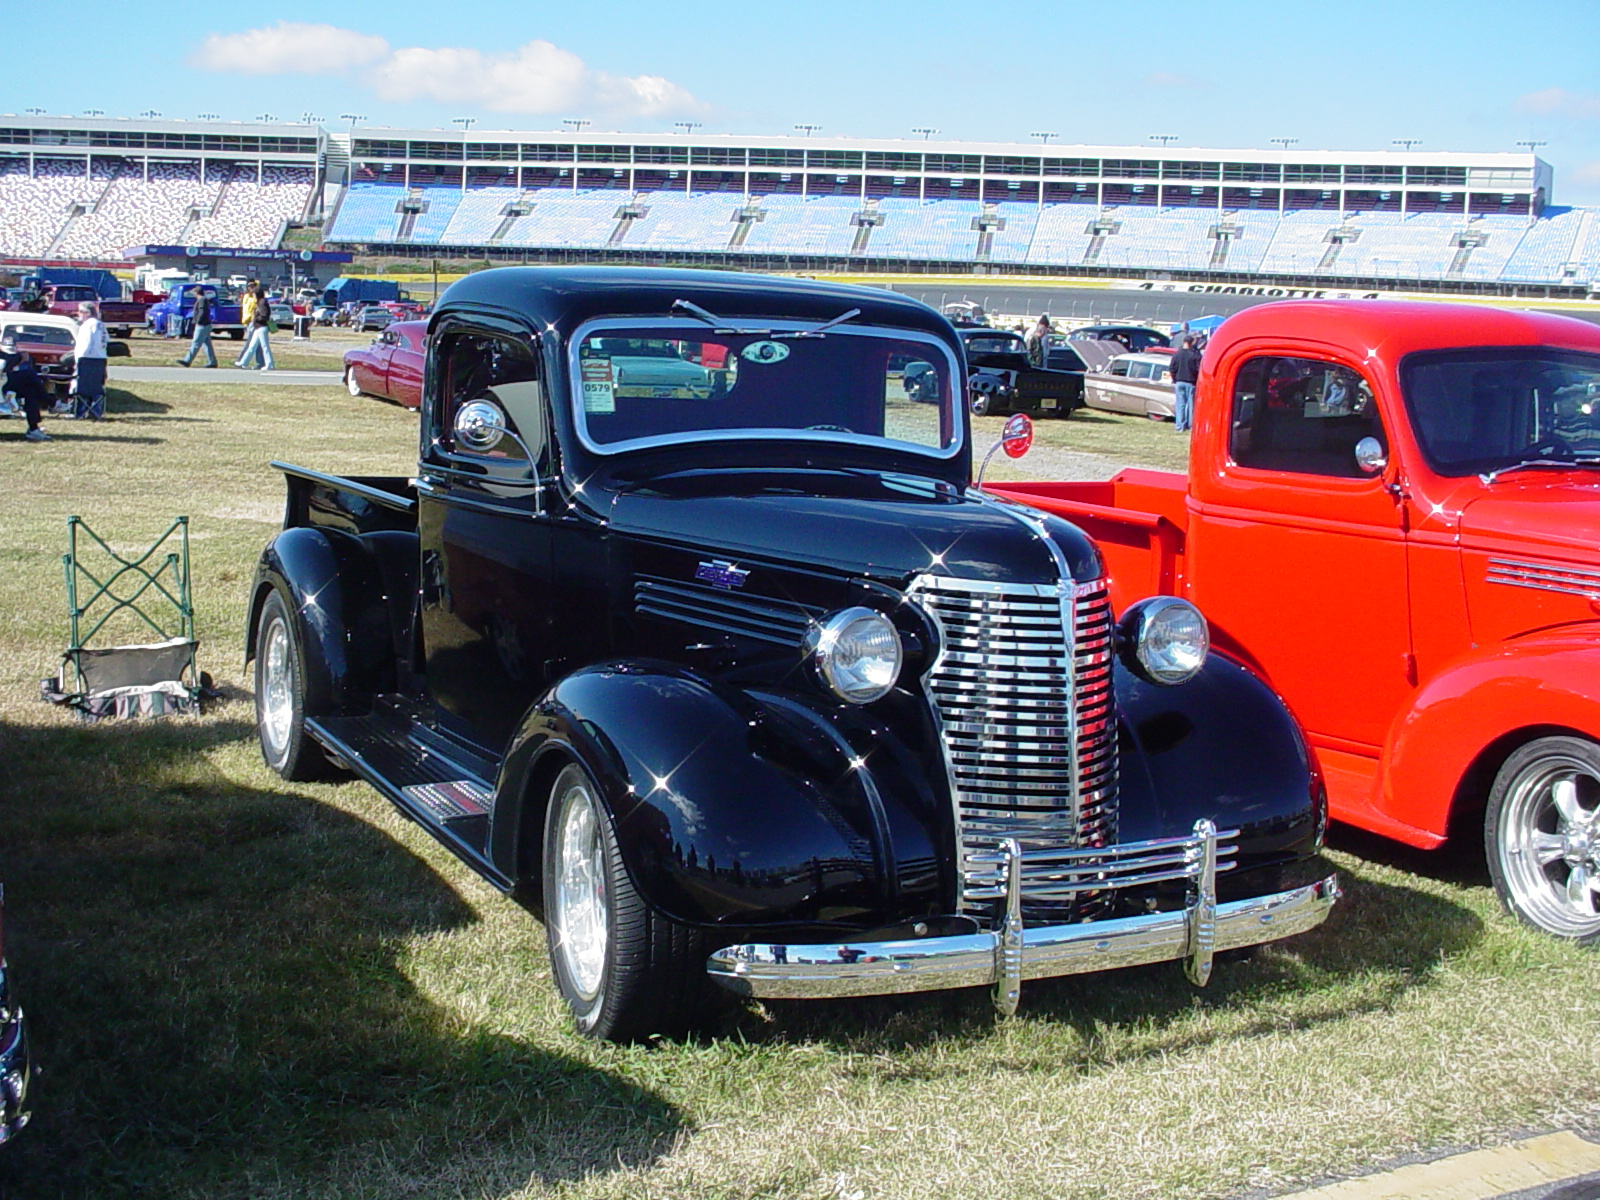 1938 Chevrolet Pickup by Shadow55419 on DeviantArt